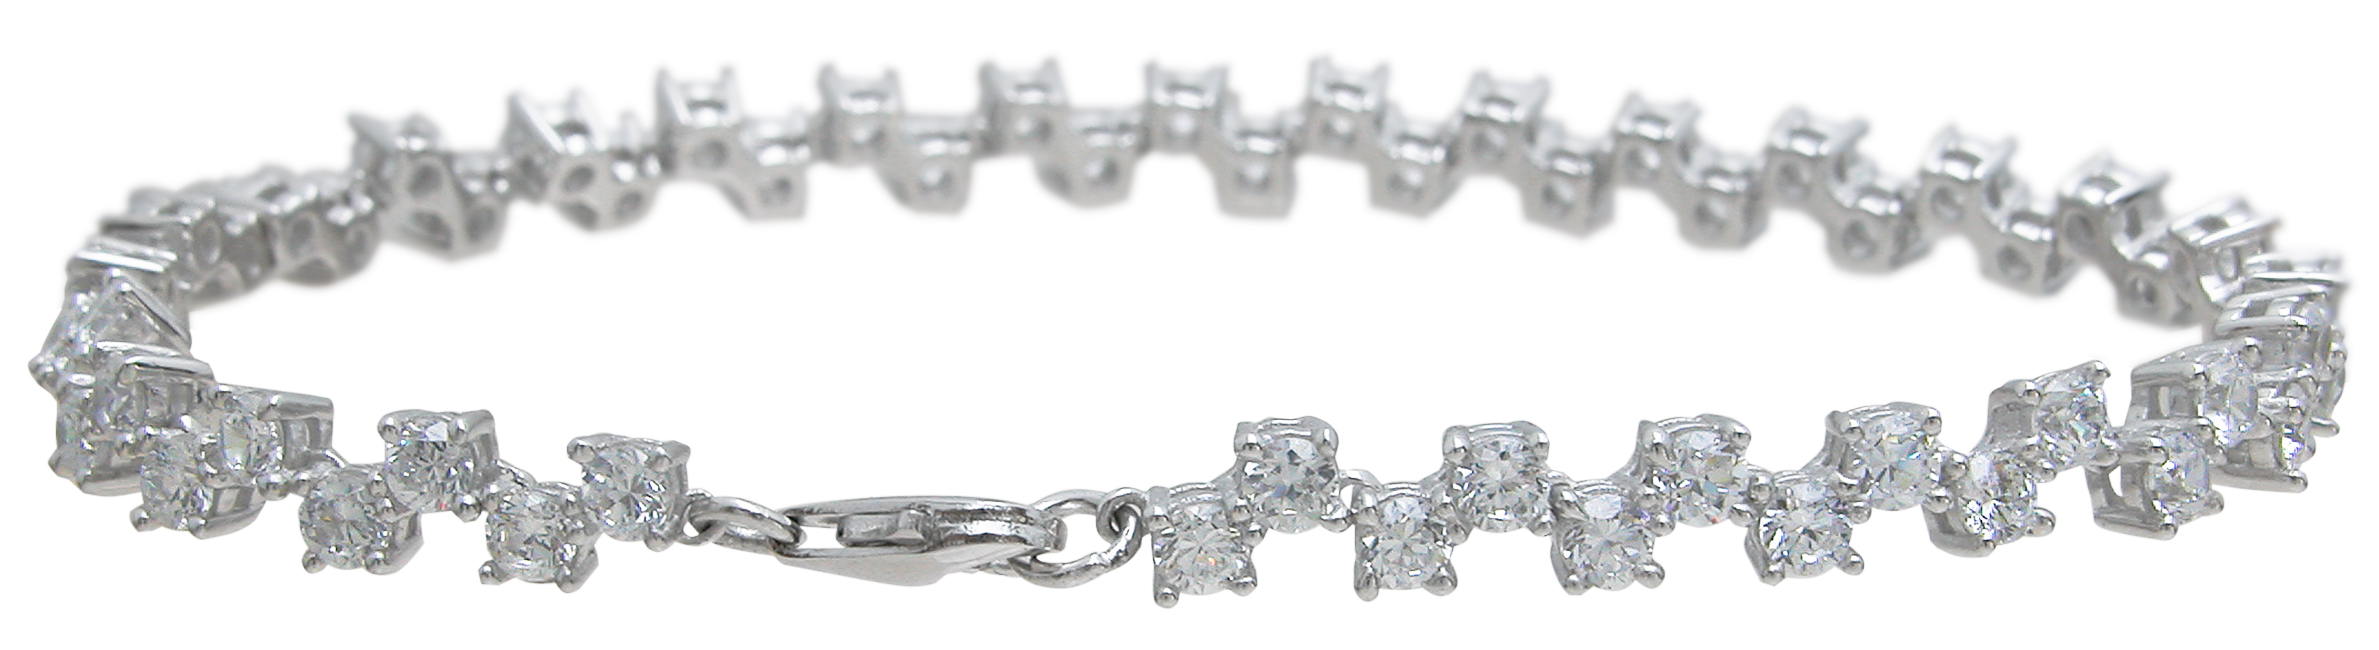 Wholesale 925 Sterling Silver Fashion Bracelet